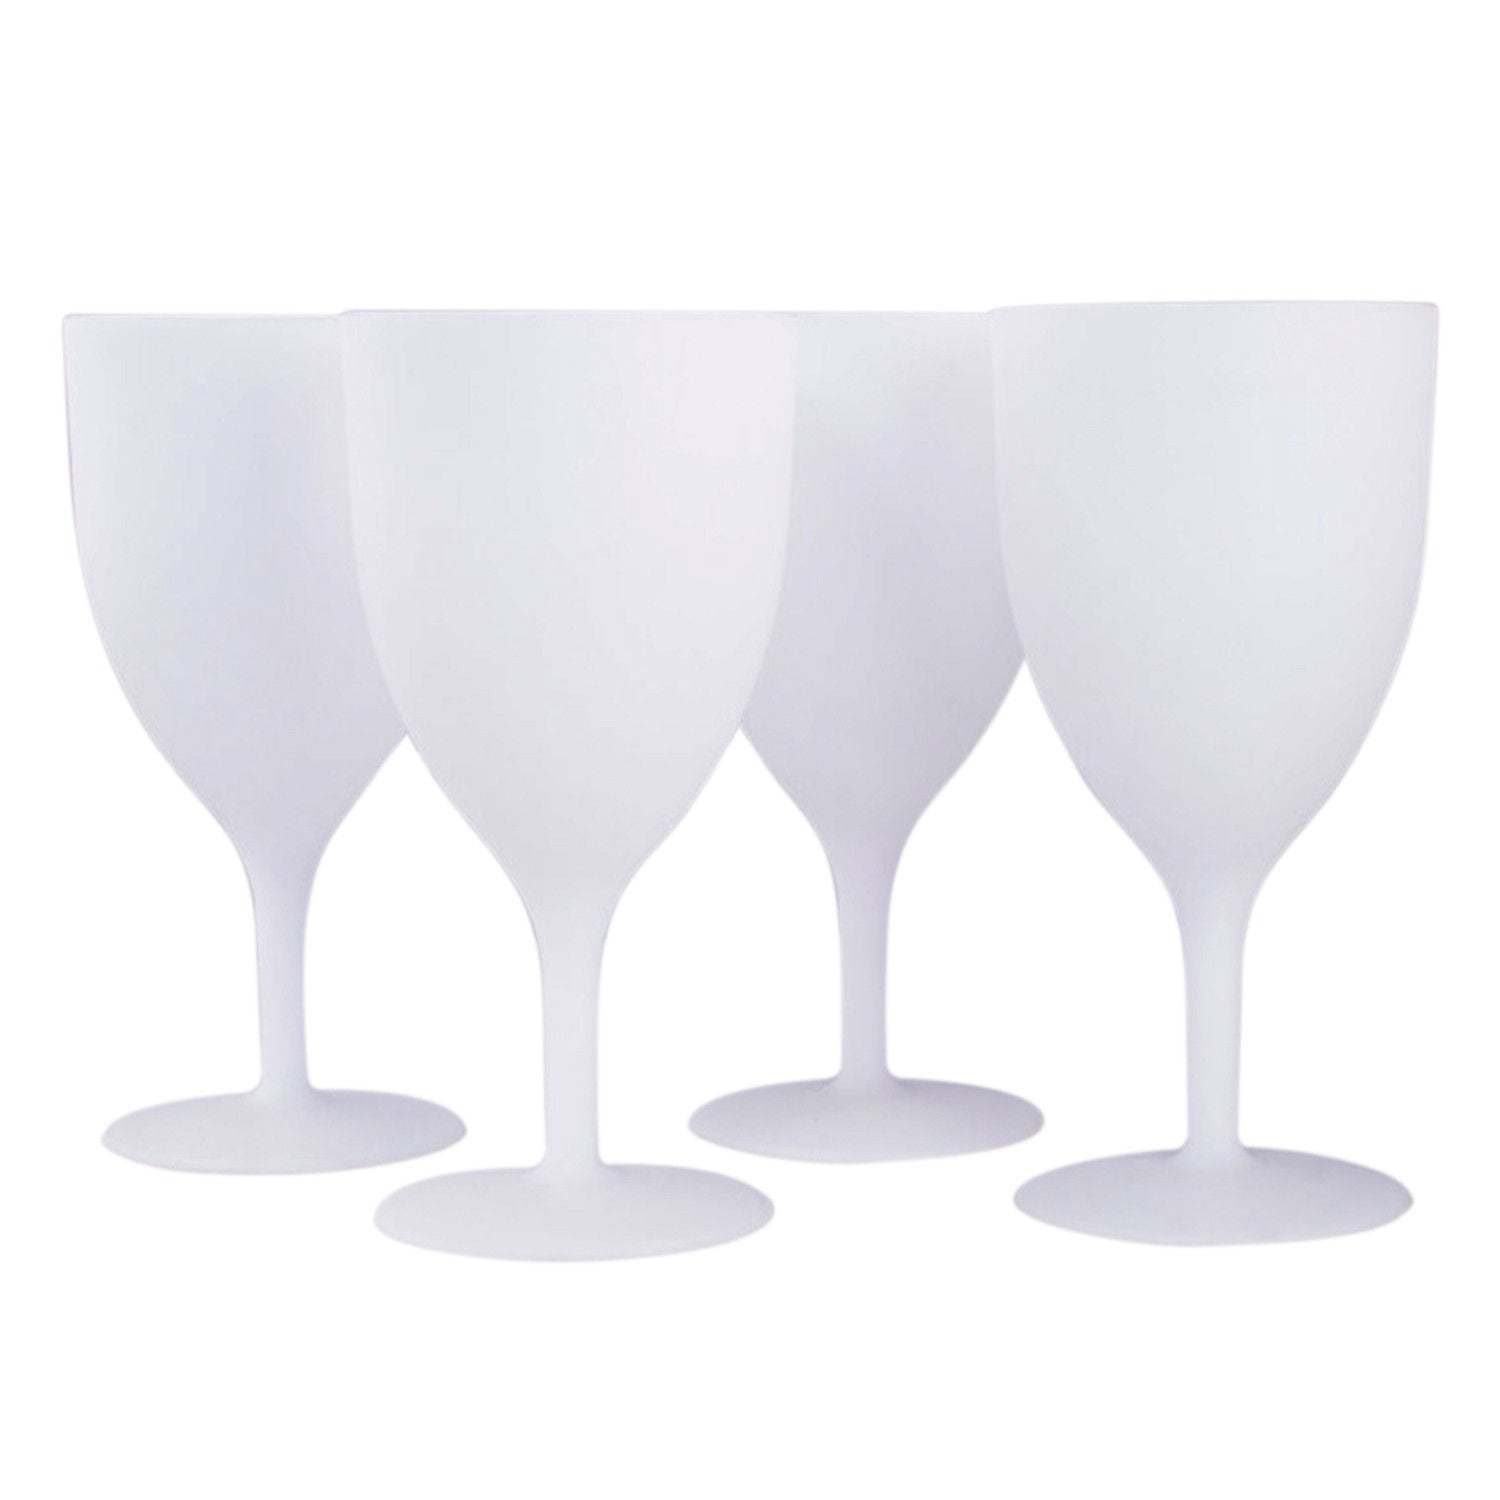 4 Pcs Reusable Picnic Goblets Set - Plastic Wine Cups - White